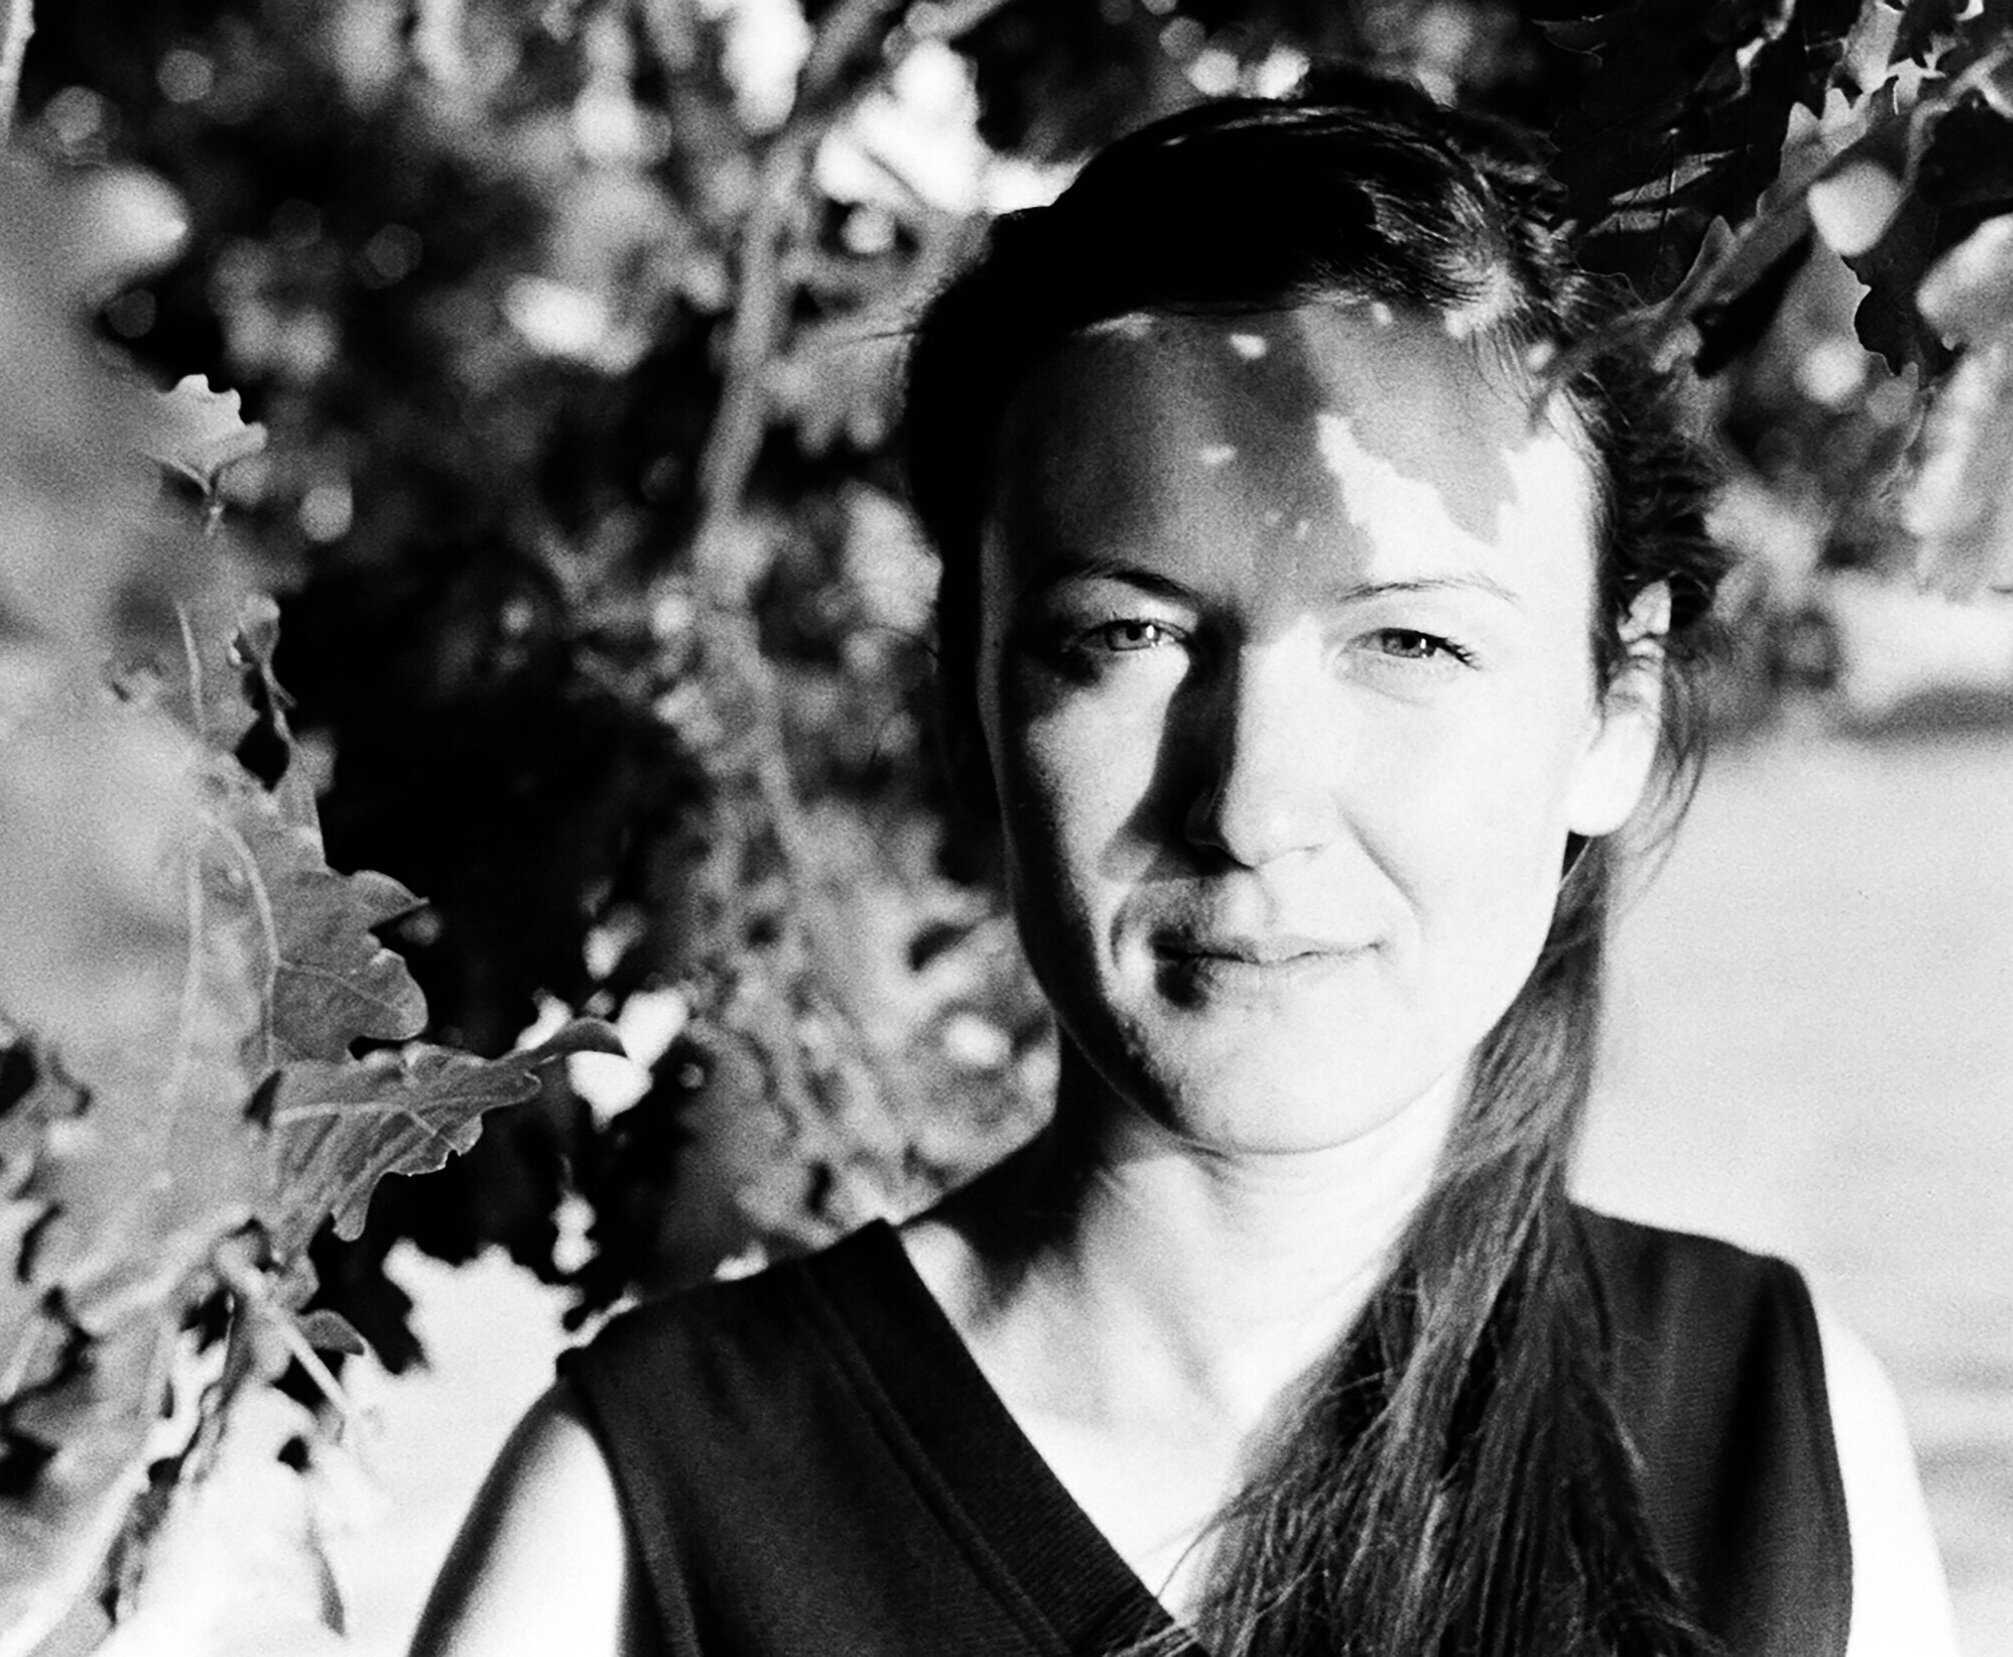 - About The Director:Aistė Žegulytė was born in 1986 in Panevėžys, Lithuania where she graduated from high school and the School of Fine Arts. Between 2006 and 2009 she studied Photographic Technology at Vilnius University of Applied Engineering Sciences. In 2013 she graduated in Television and Cinema Directing from the Lithuanian Music and Theater Academy. Her graduation project was the documentary film Identities. So far she has made several fictional and documentary short films.